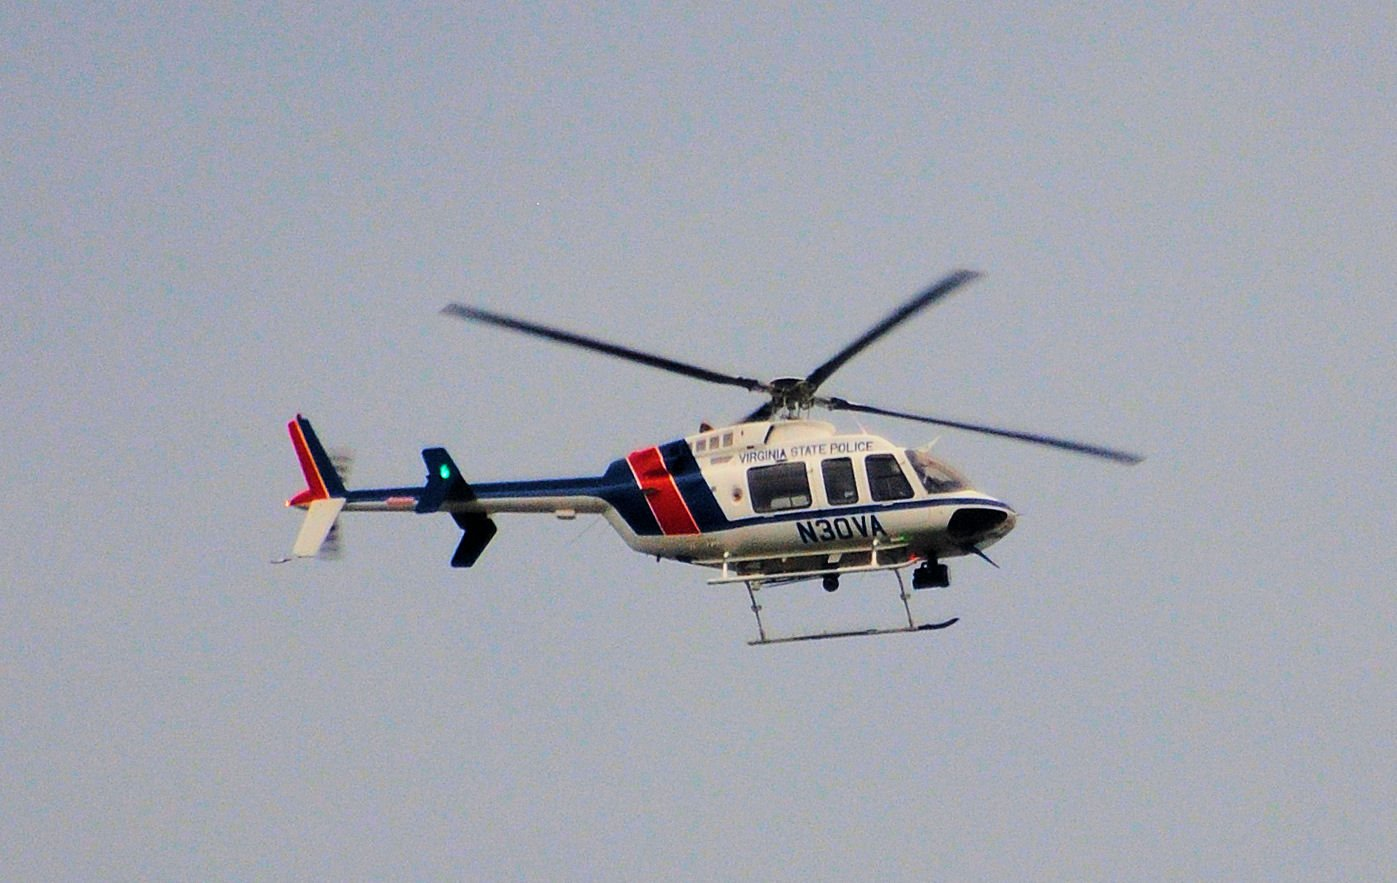 Helicopter in Va. Police Crash Had Past Engine Problems